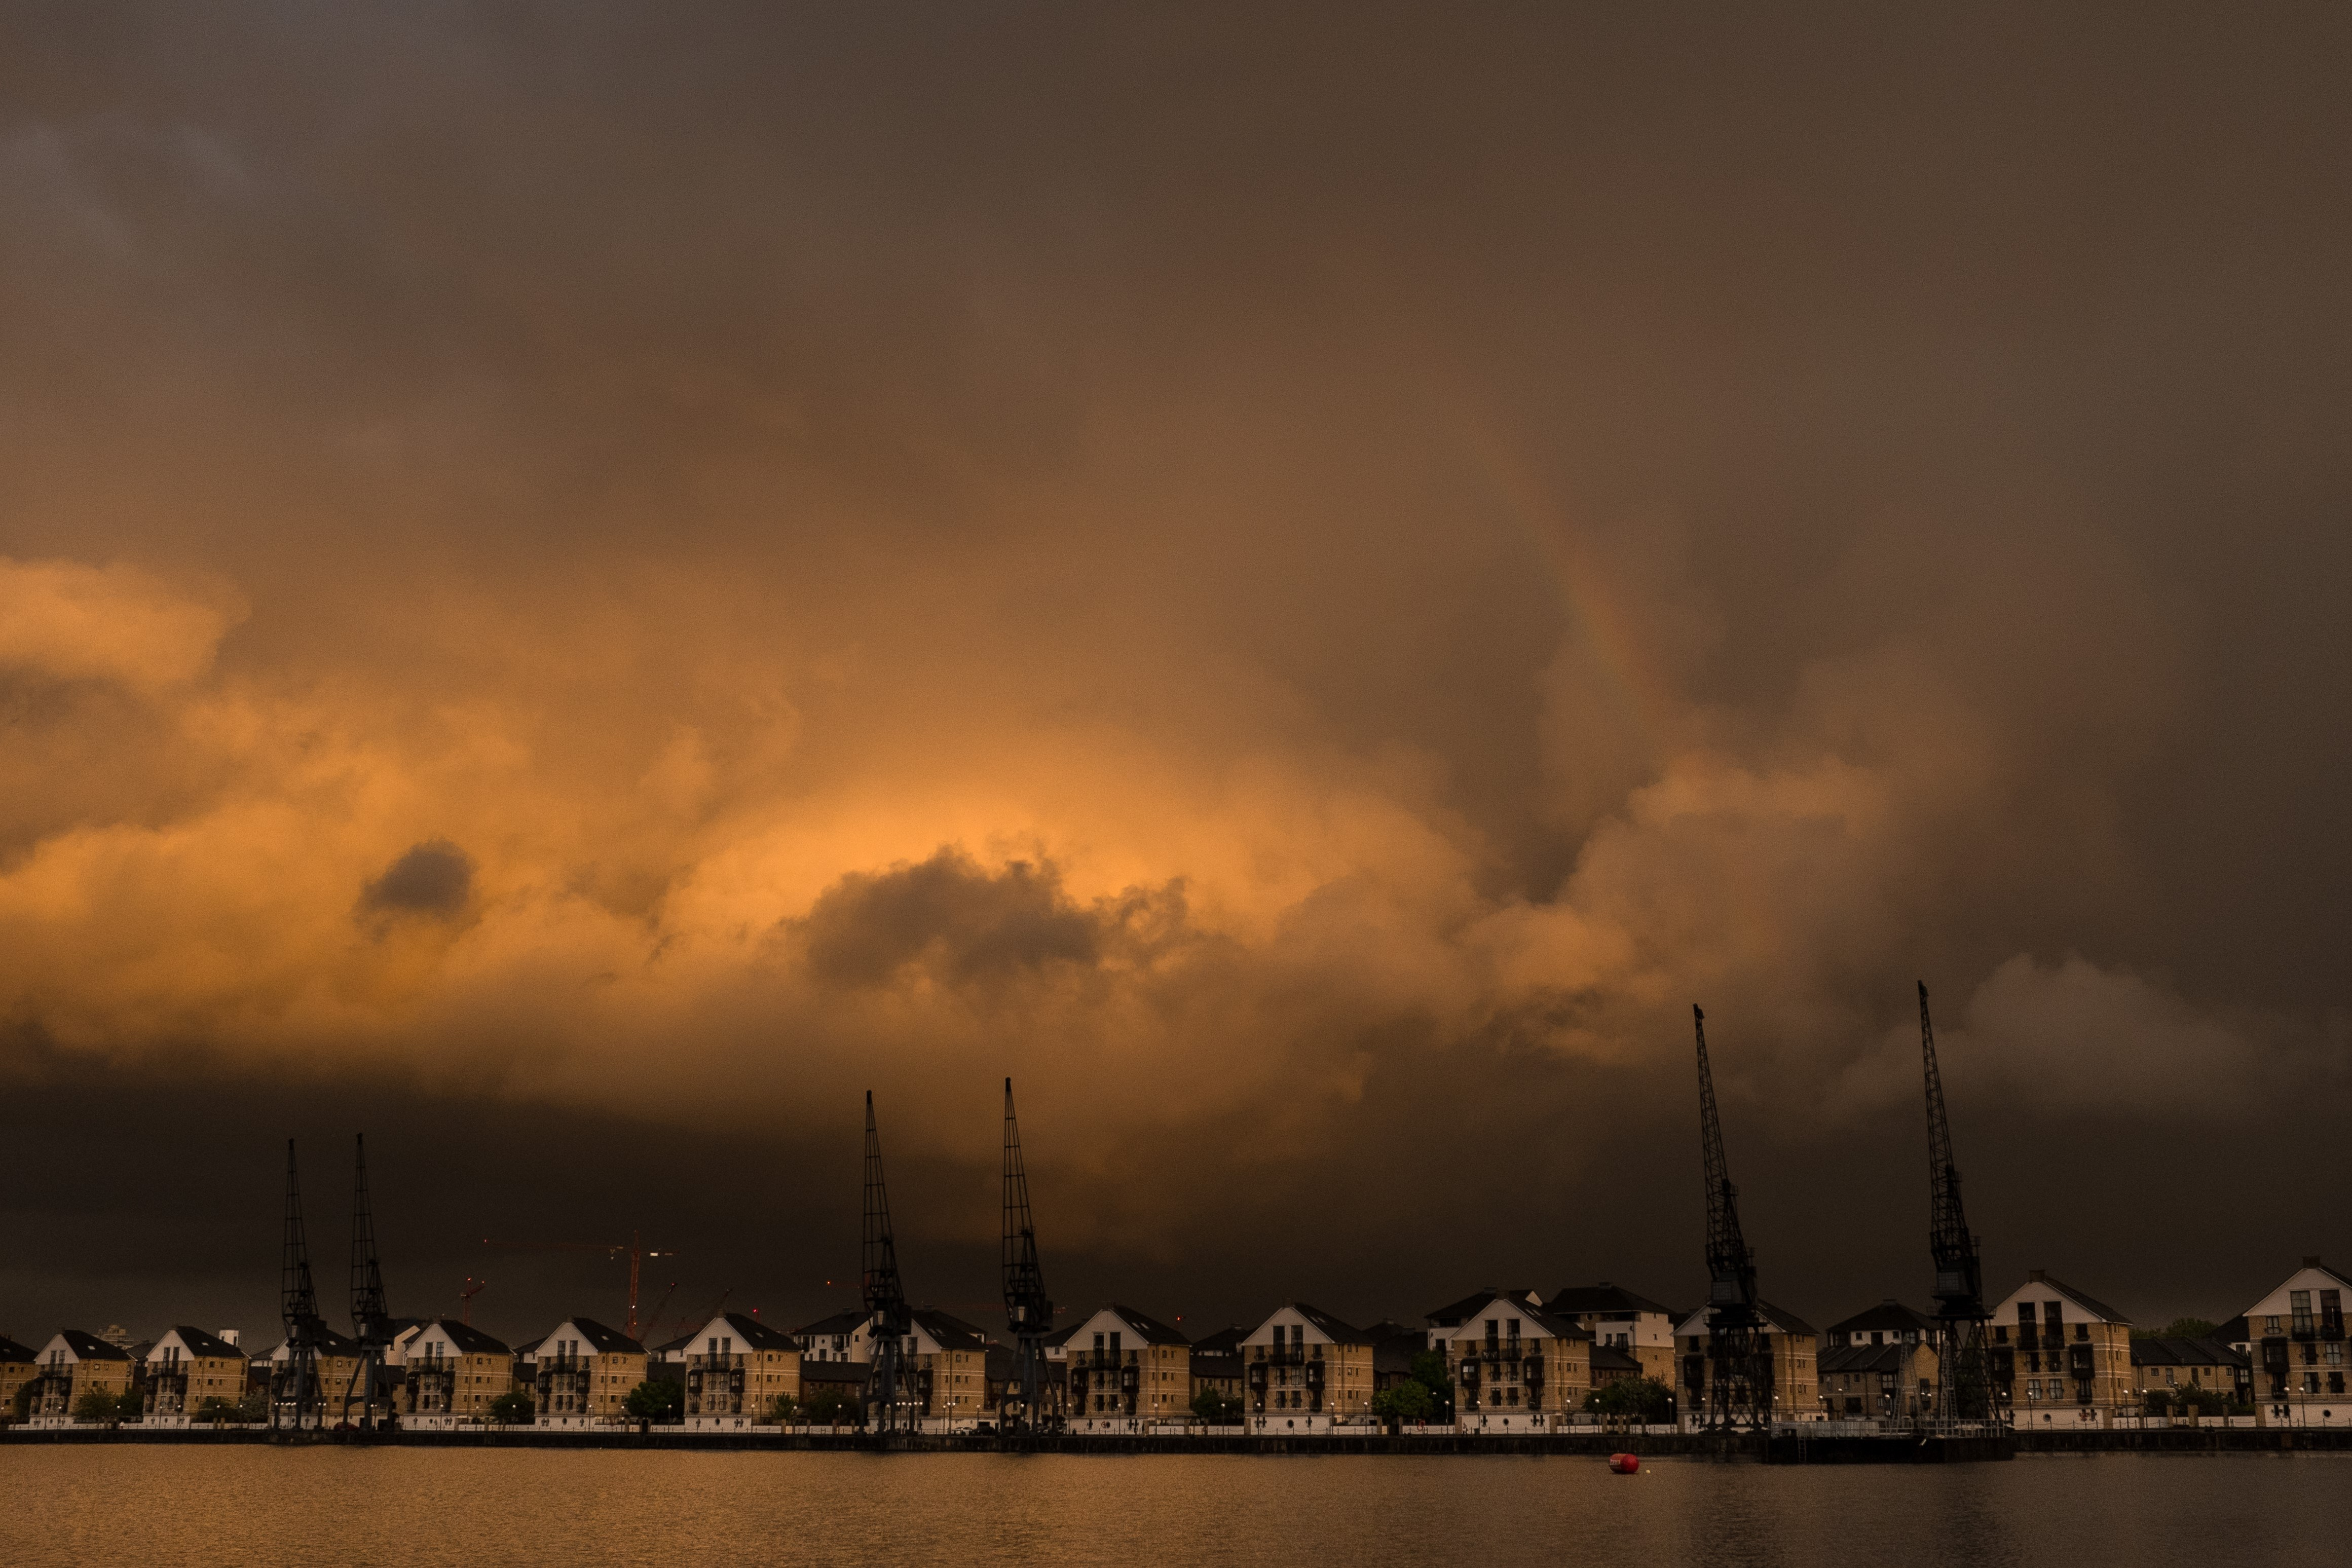 A photo of buildings along the Royal Docks with a moody and dramatic skyline